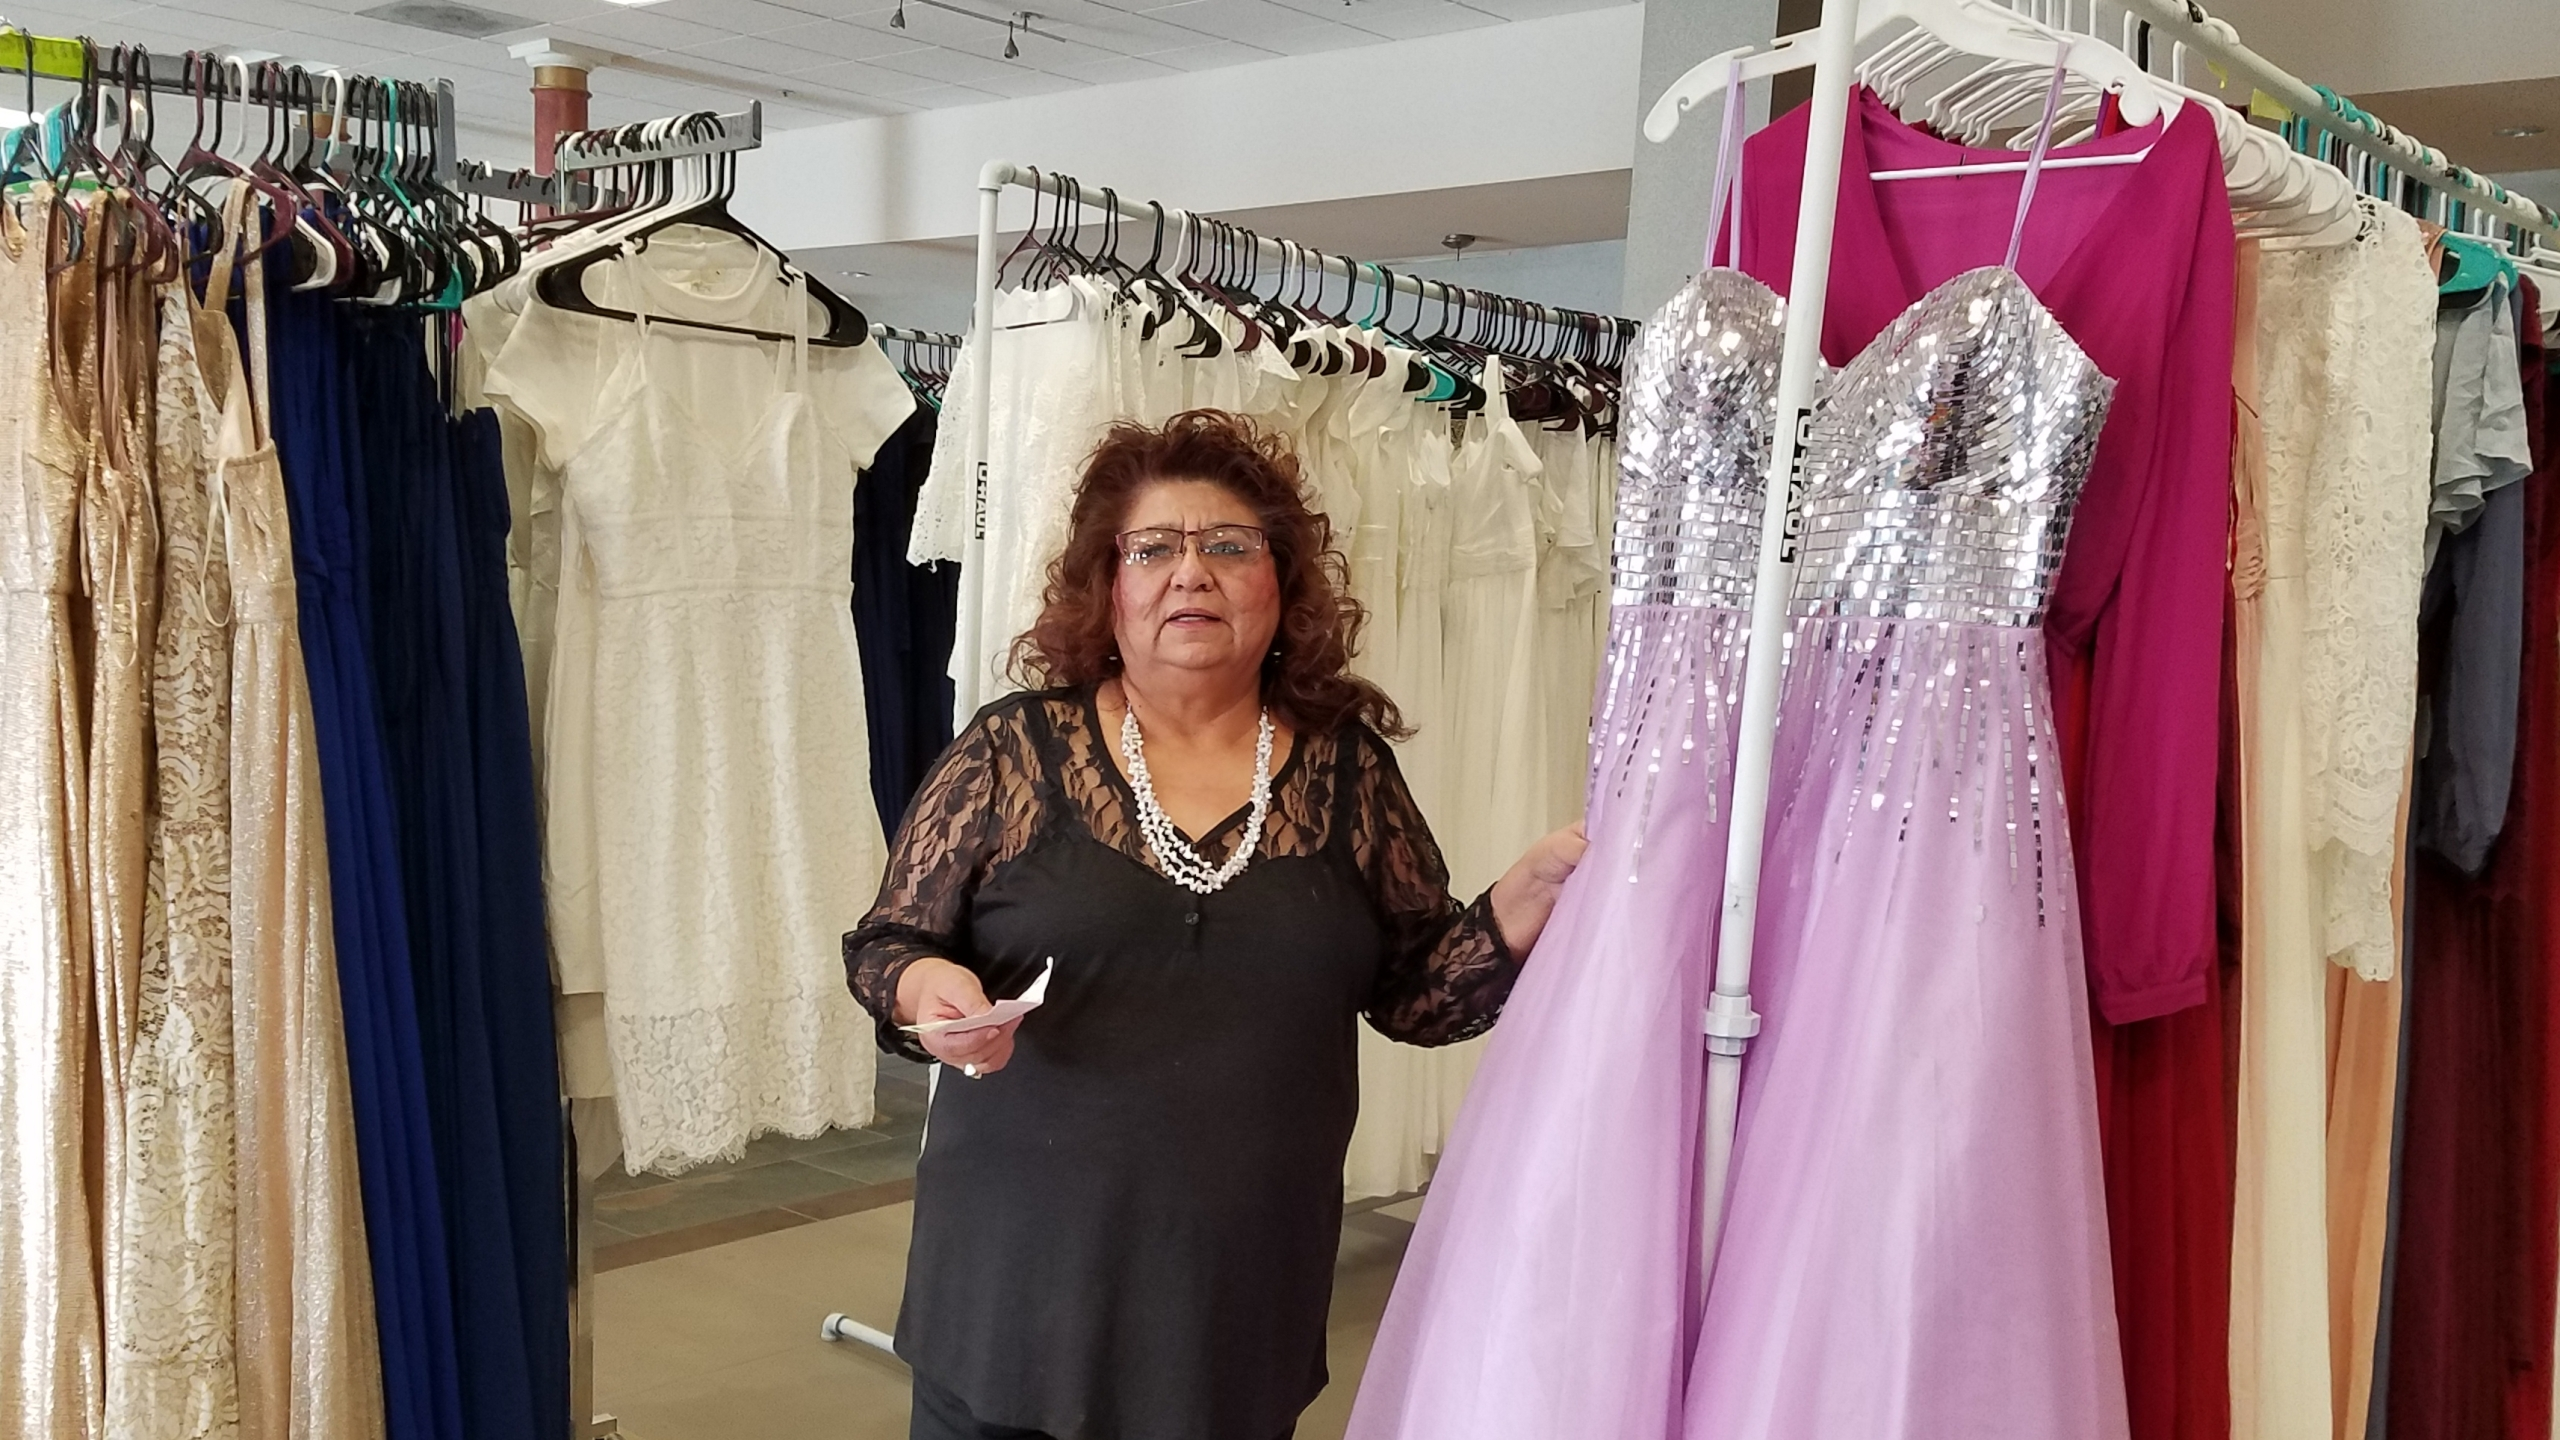 Over 1,000 prom dresses will be given away in Lindsay this month